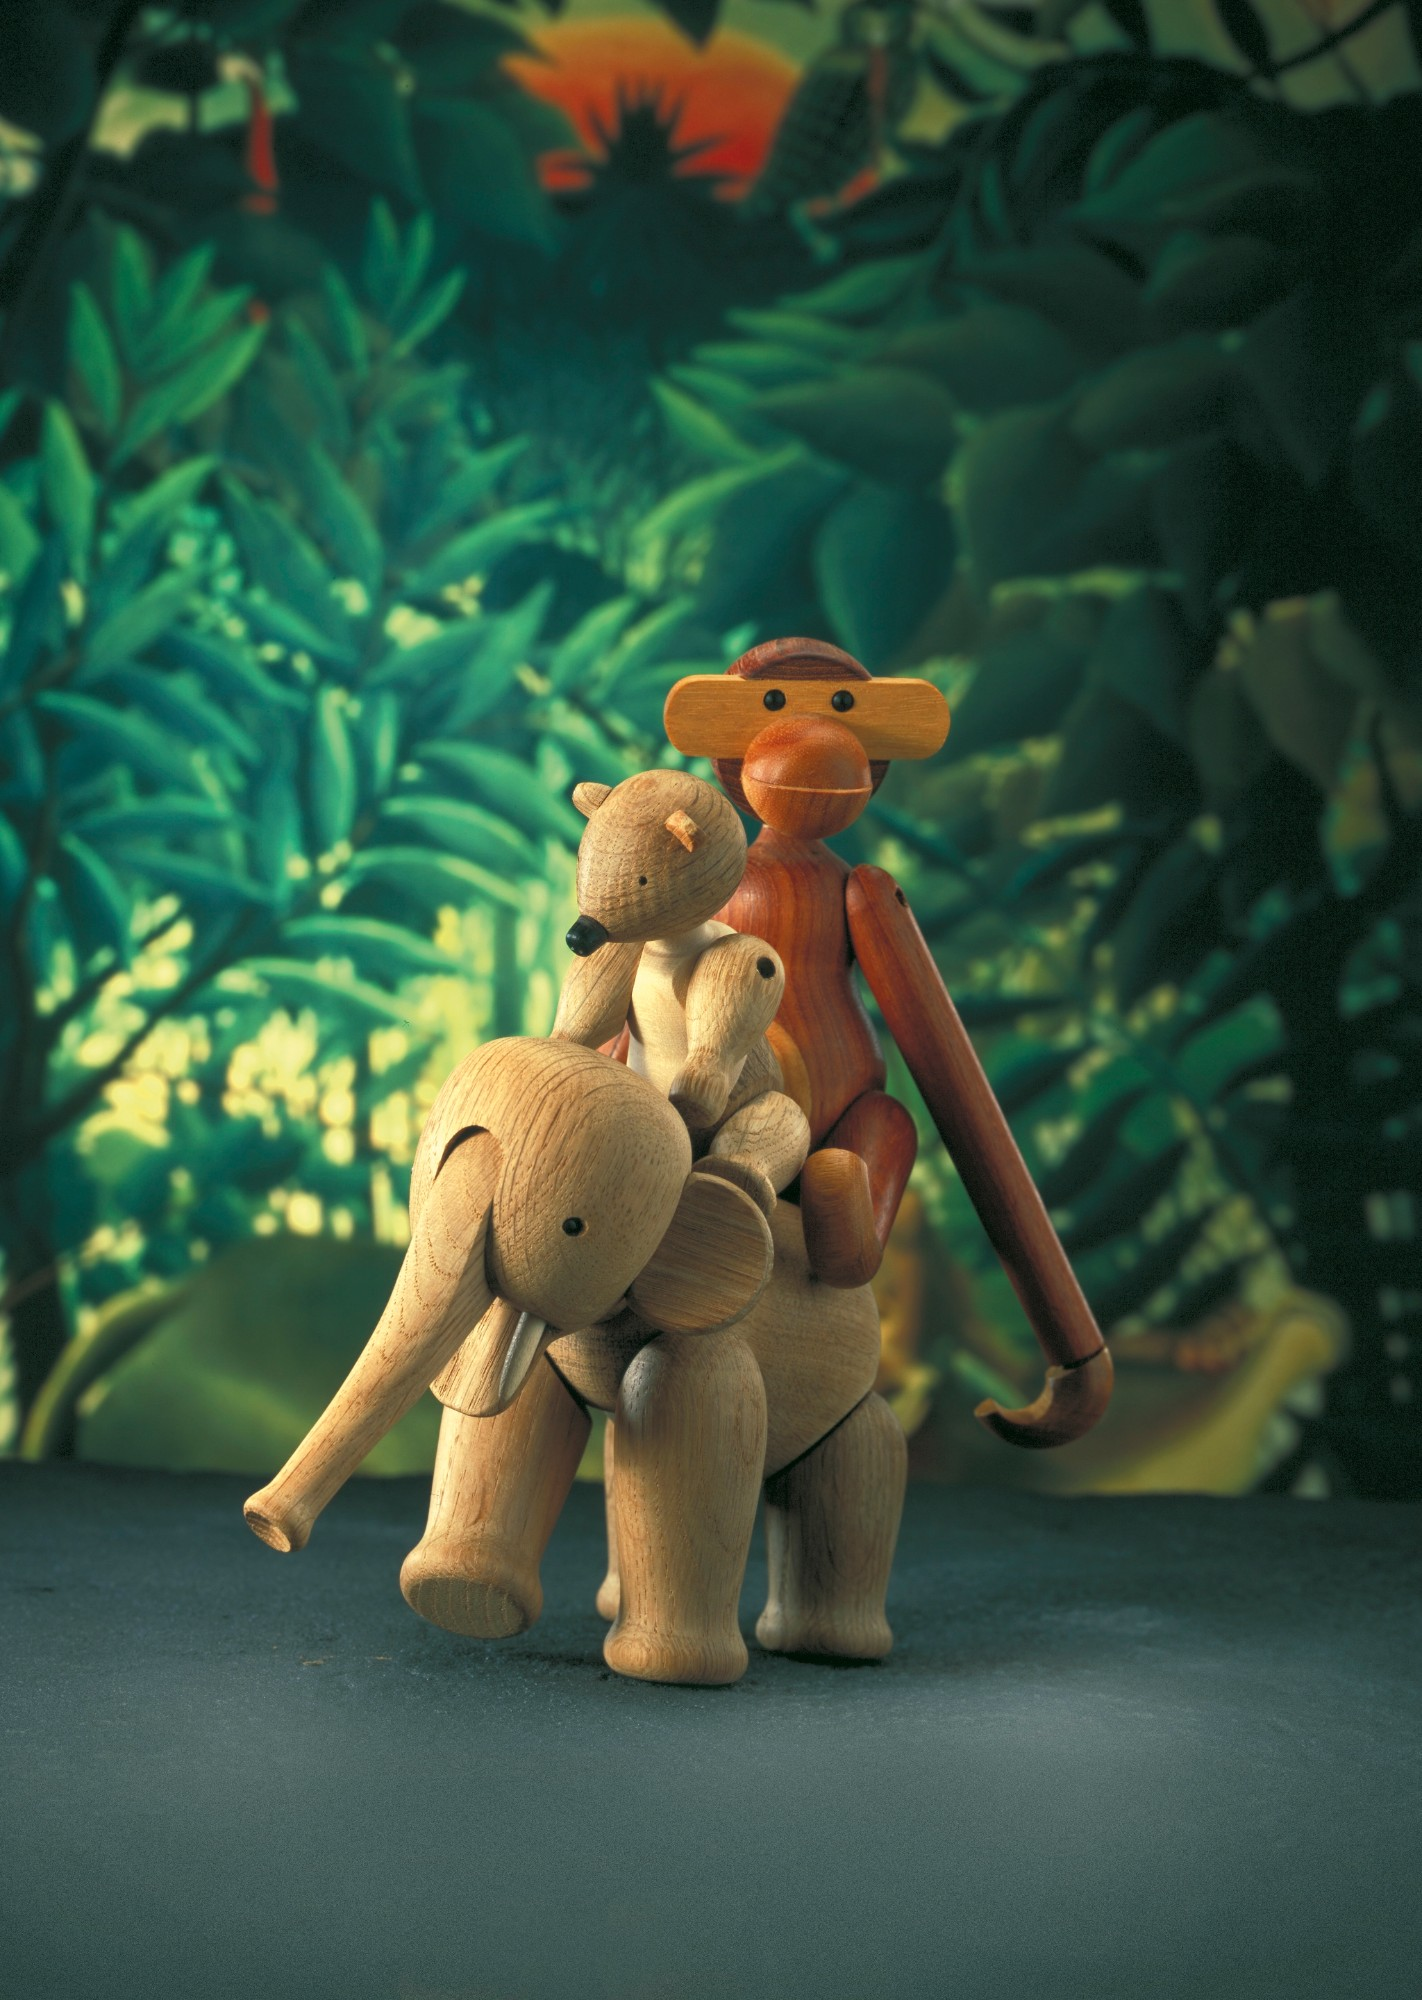 Introducing the Cheerful Wooden Characters of Kay Bojesen